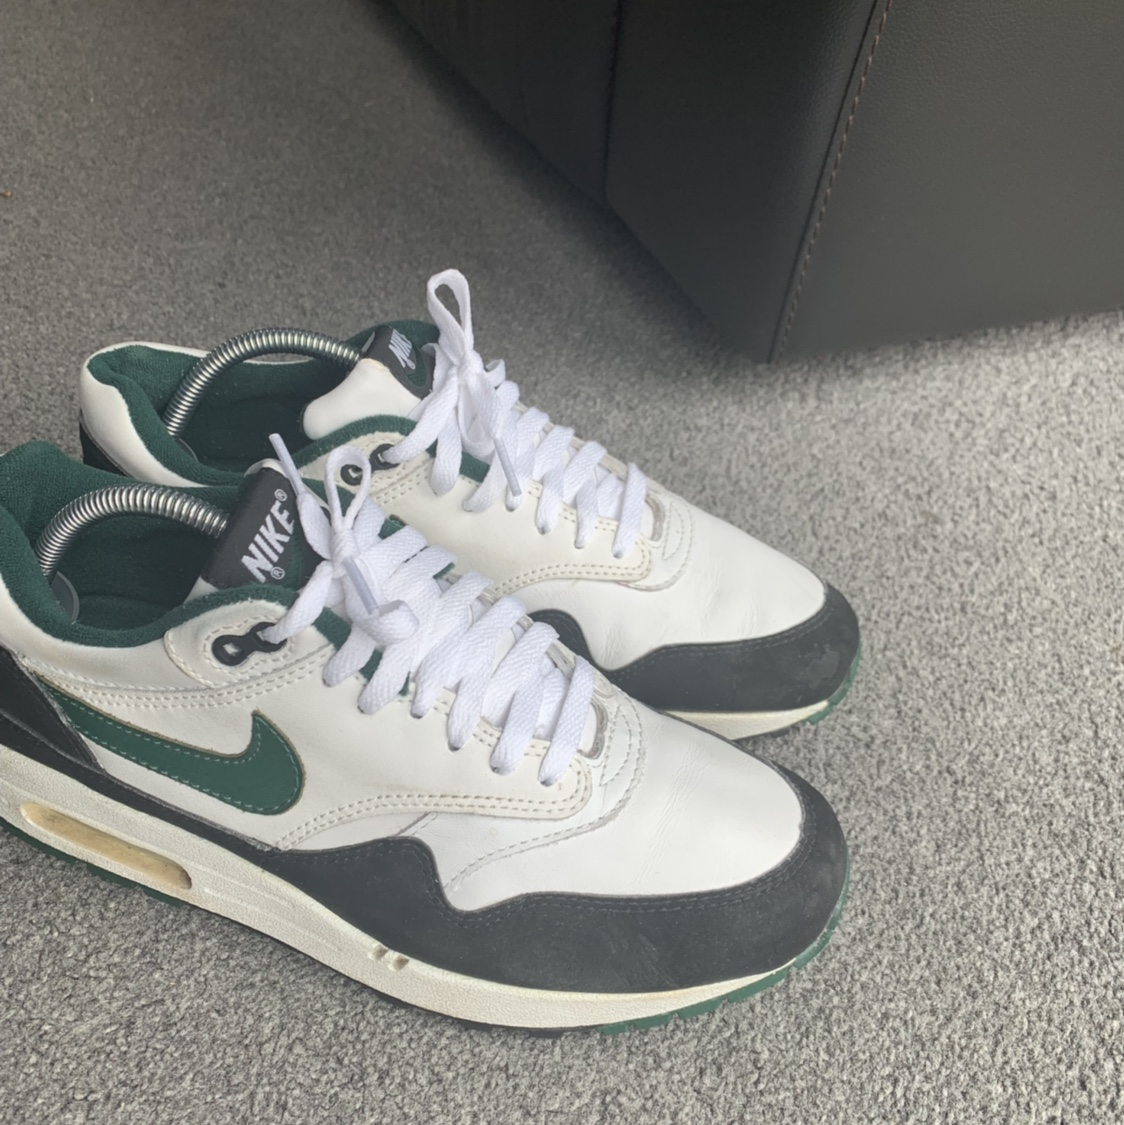 Nike air max 1 2003 forest green uk8.5